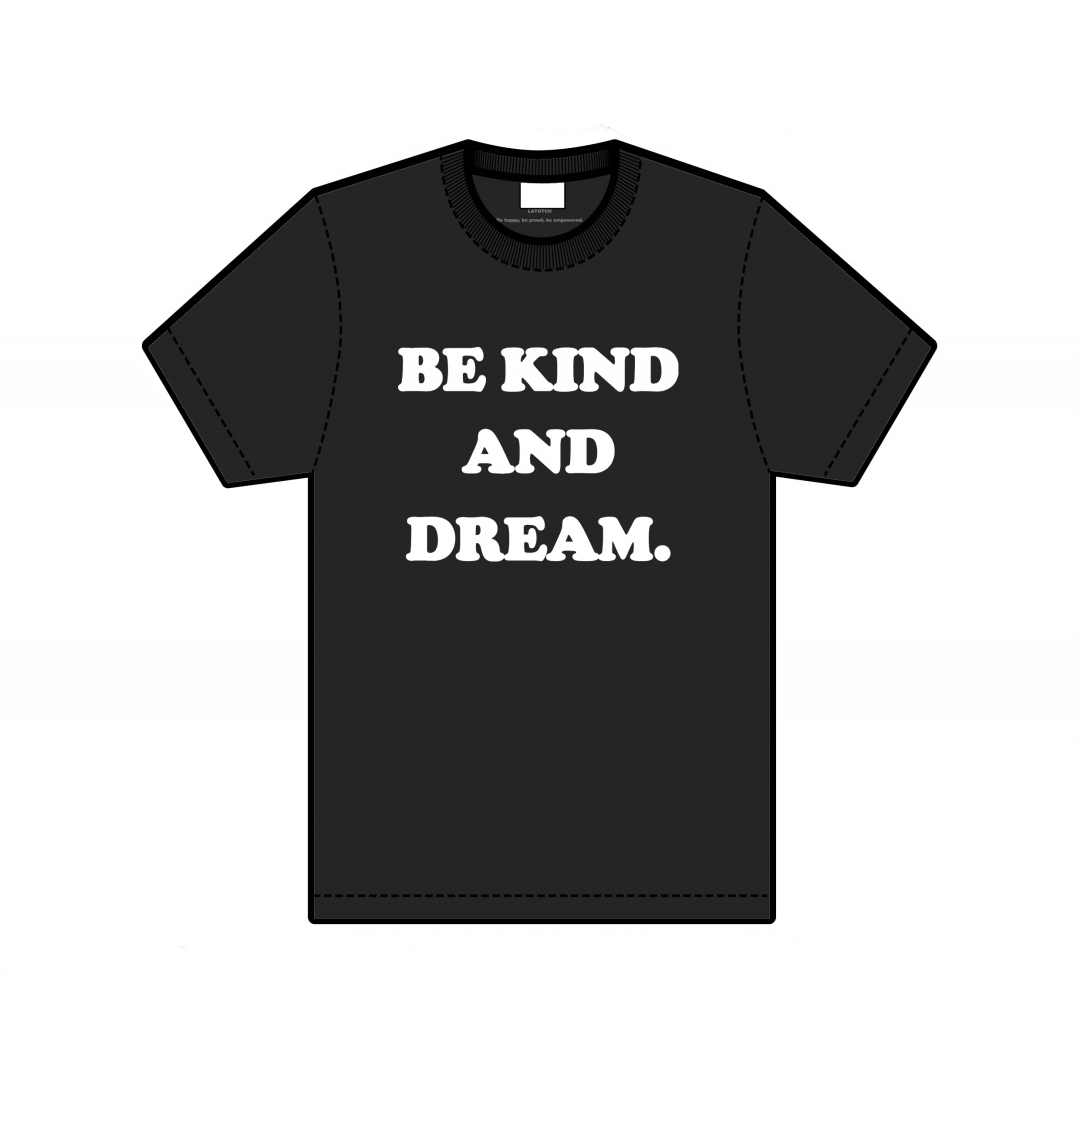 Be kind and dream - black